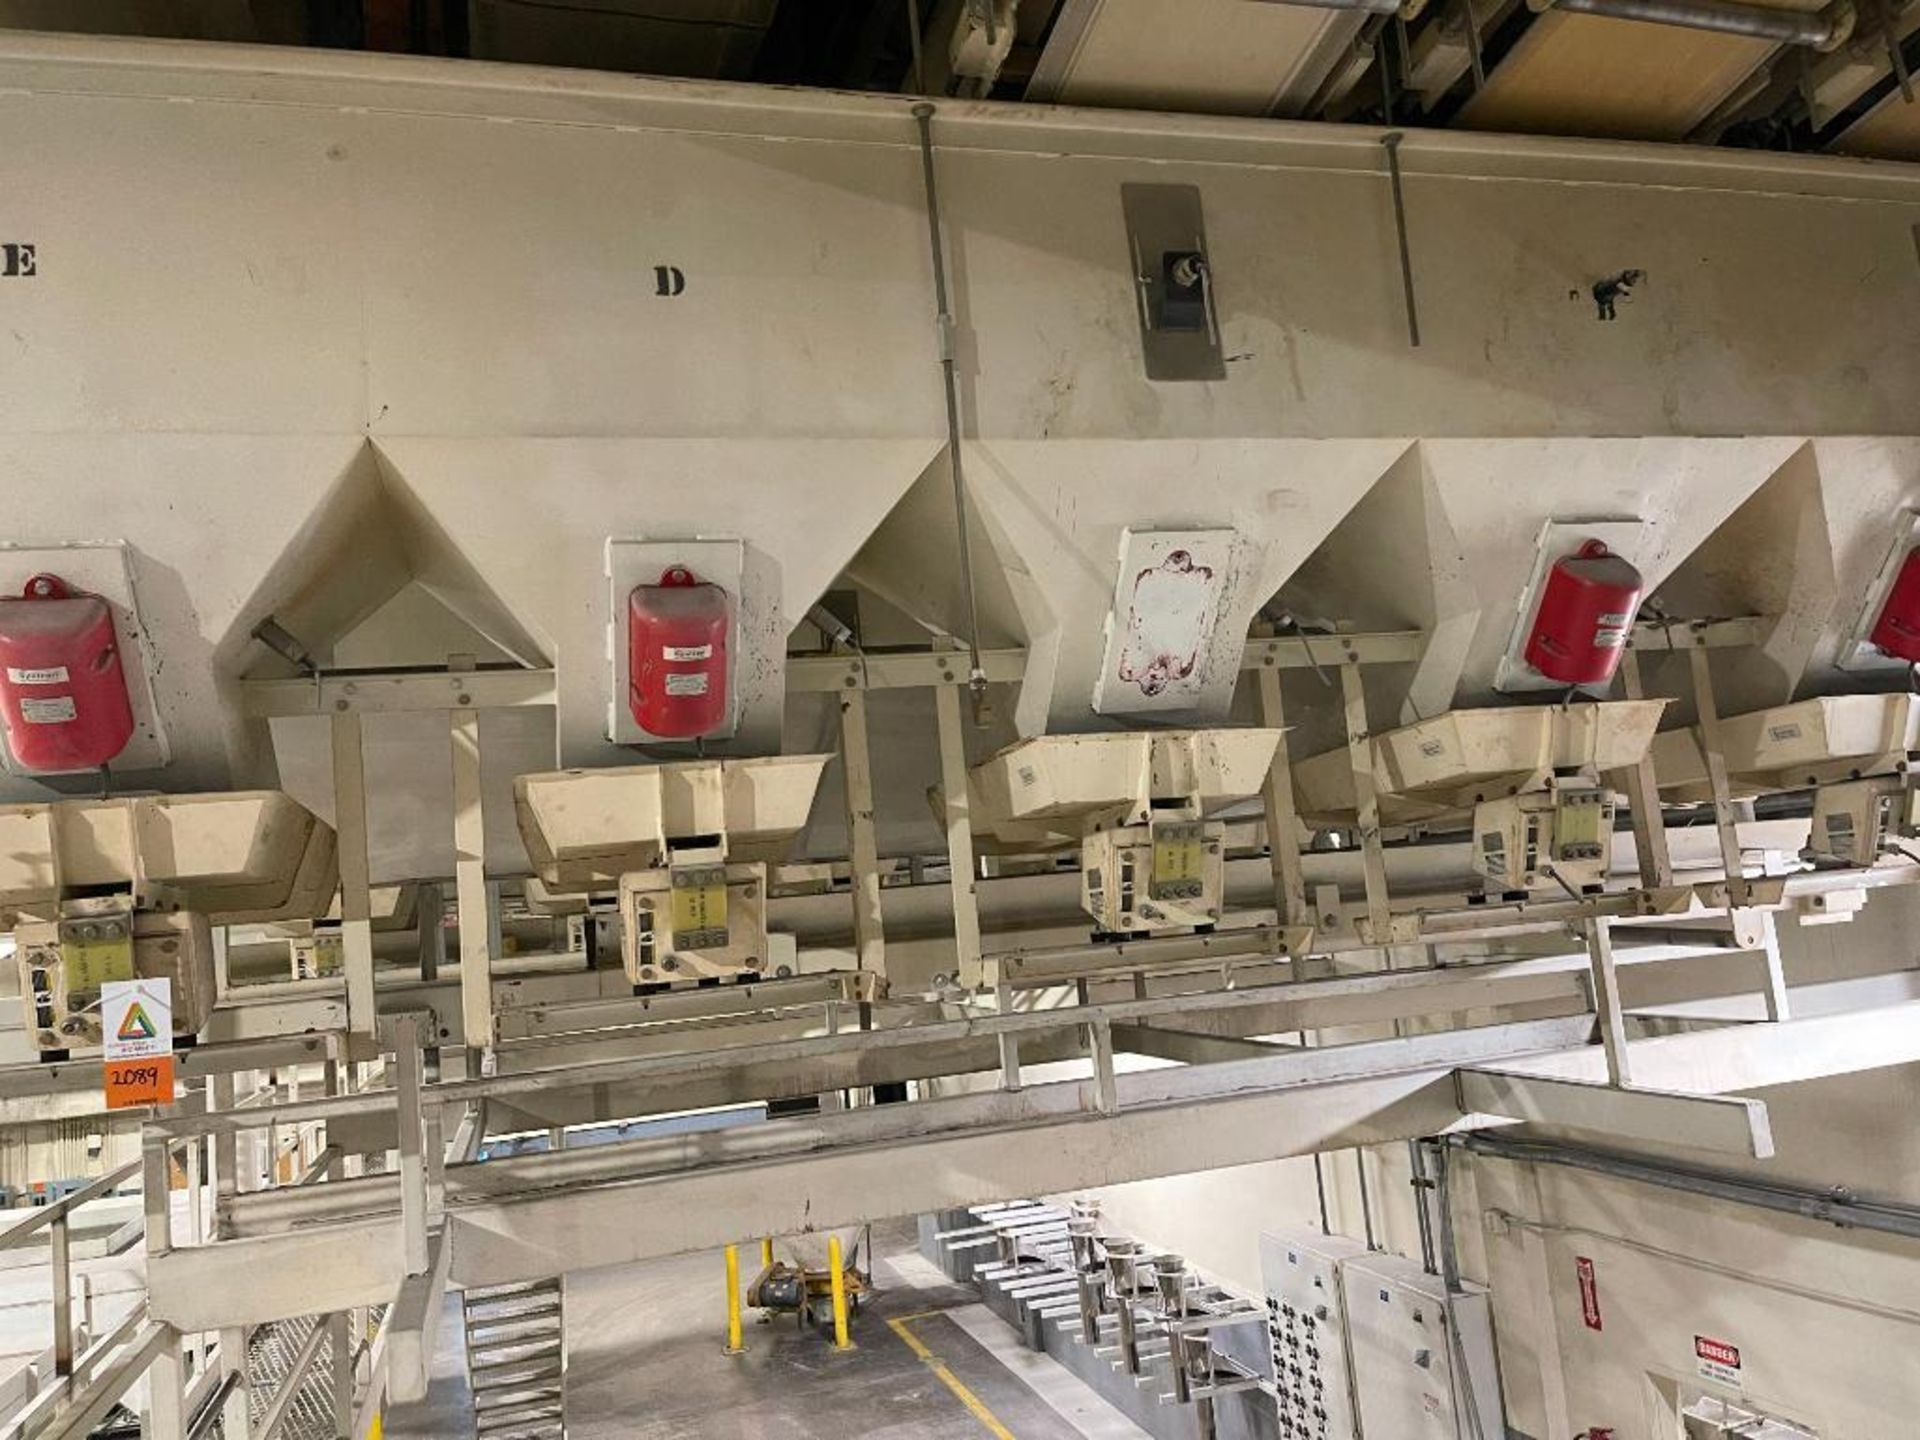 Aseeco 5-bin blending system with 5 Syntron vibratory feeders on bottom - Image 16 of 18